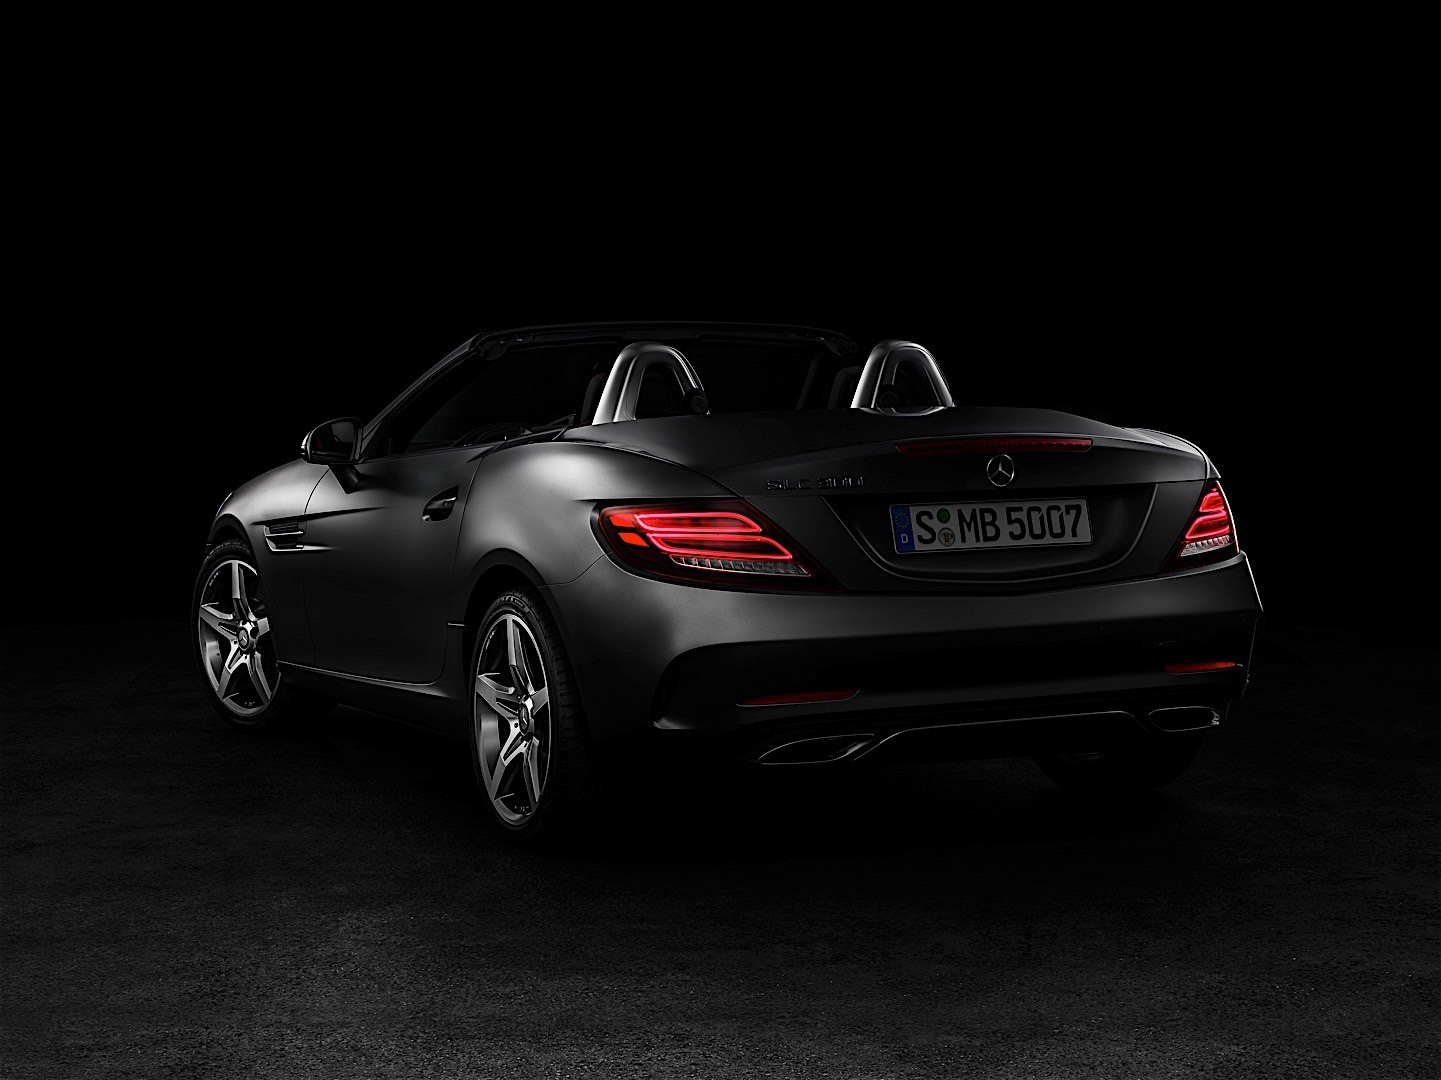 https://s1.cdn.autoevolution.com/images/news/gallery/2017-mercedes-benz-slc-is-officially-here-but-hides-a-nasty-surprise_1.jpg